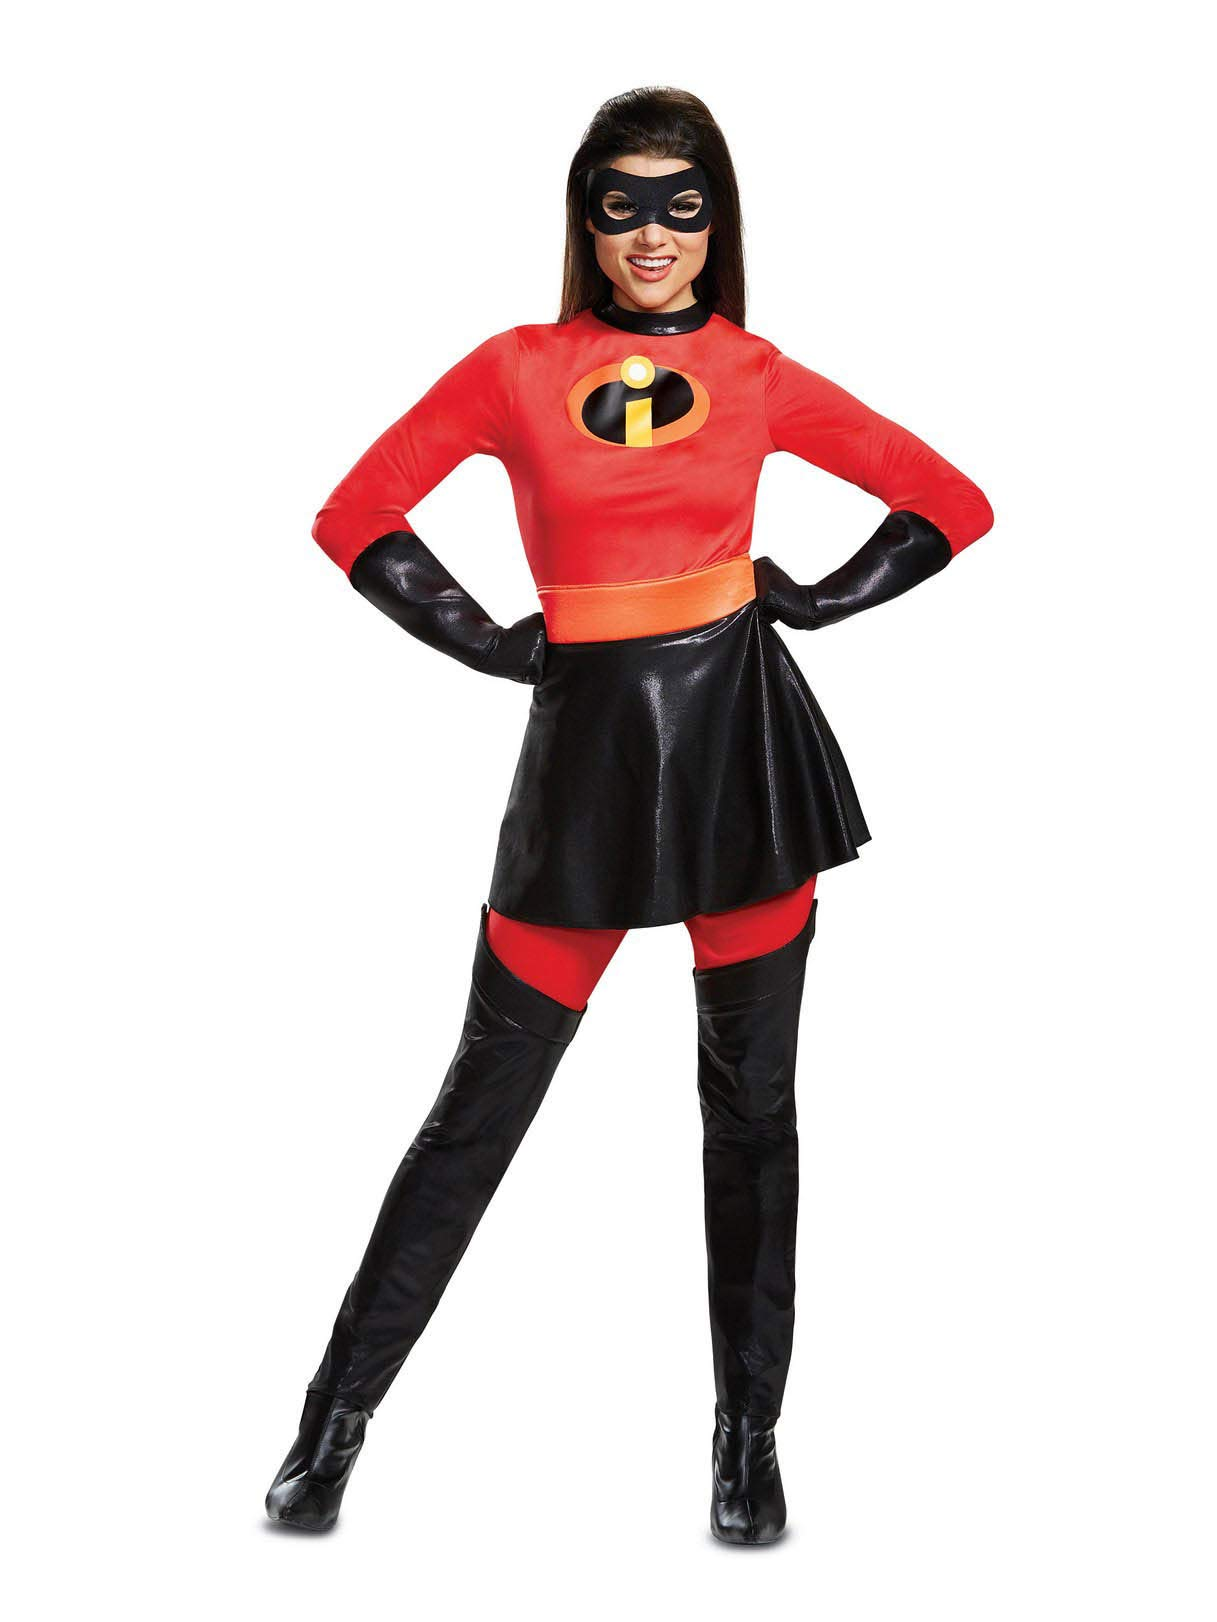 Disguise Women's Mrs. Incredible Skirted Deluxe Adult Costume, Red, L (12-14)